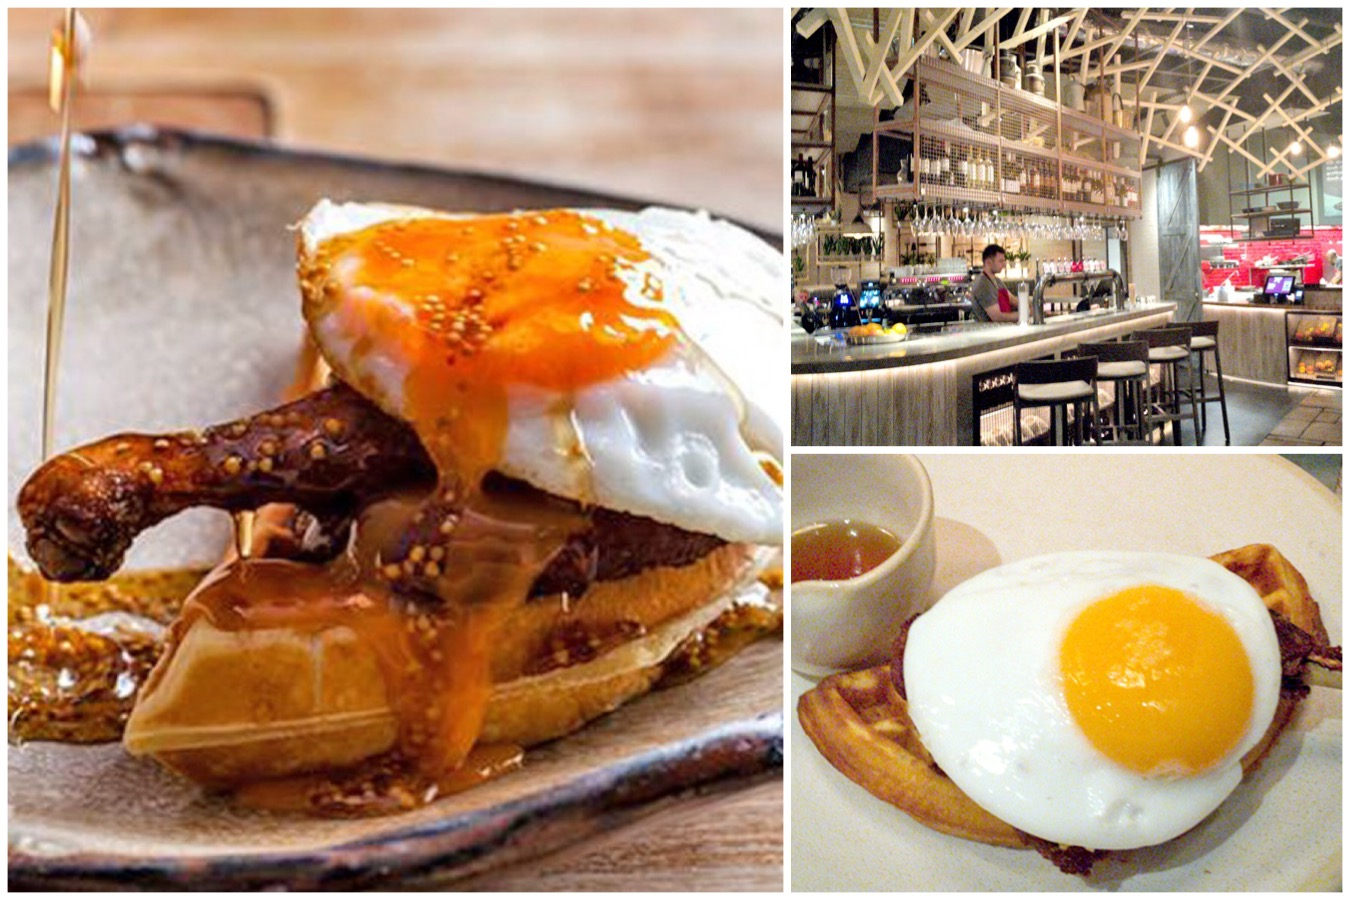 Duck and Waffle Local – Famous Duck & Waffle Place Opens Fast Casual Restaurant, At St James London